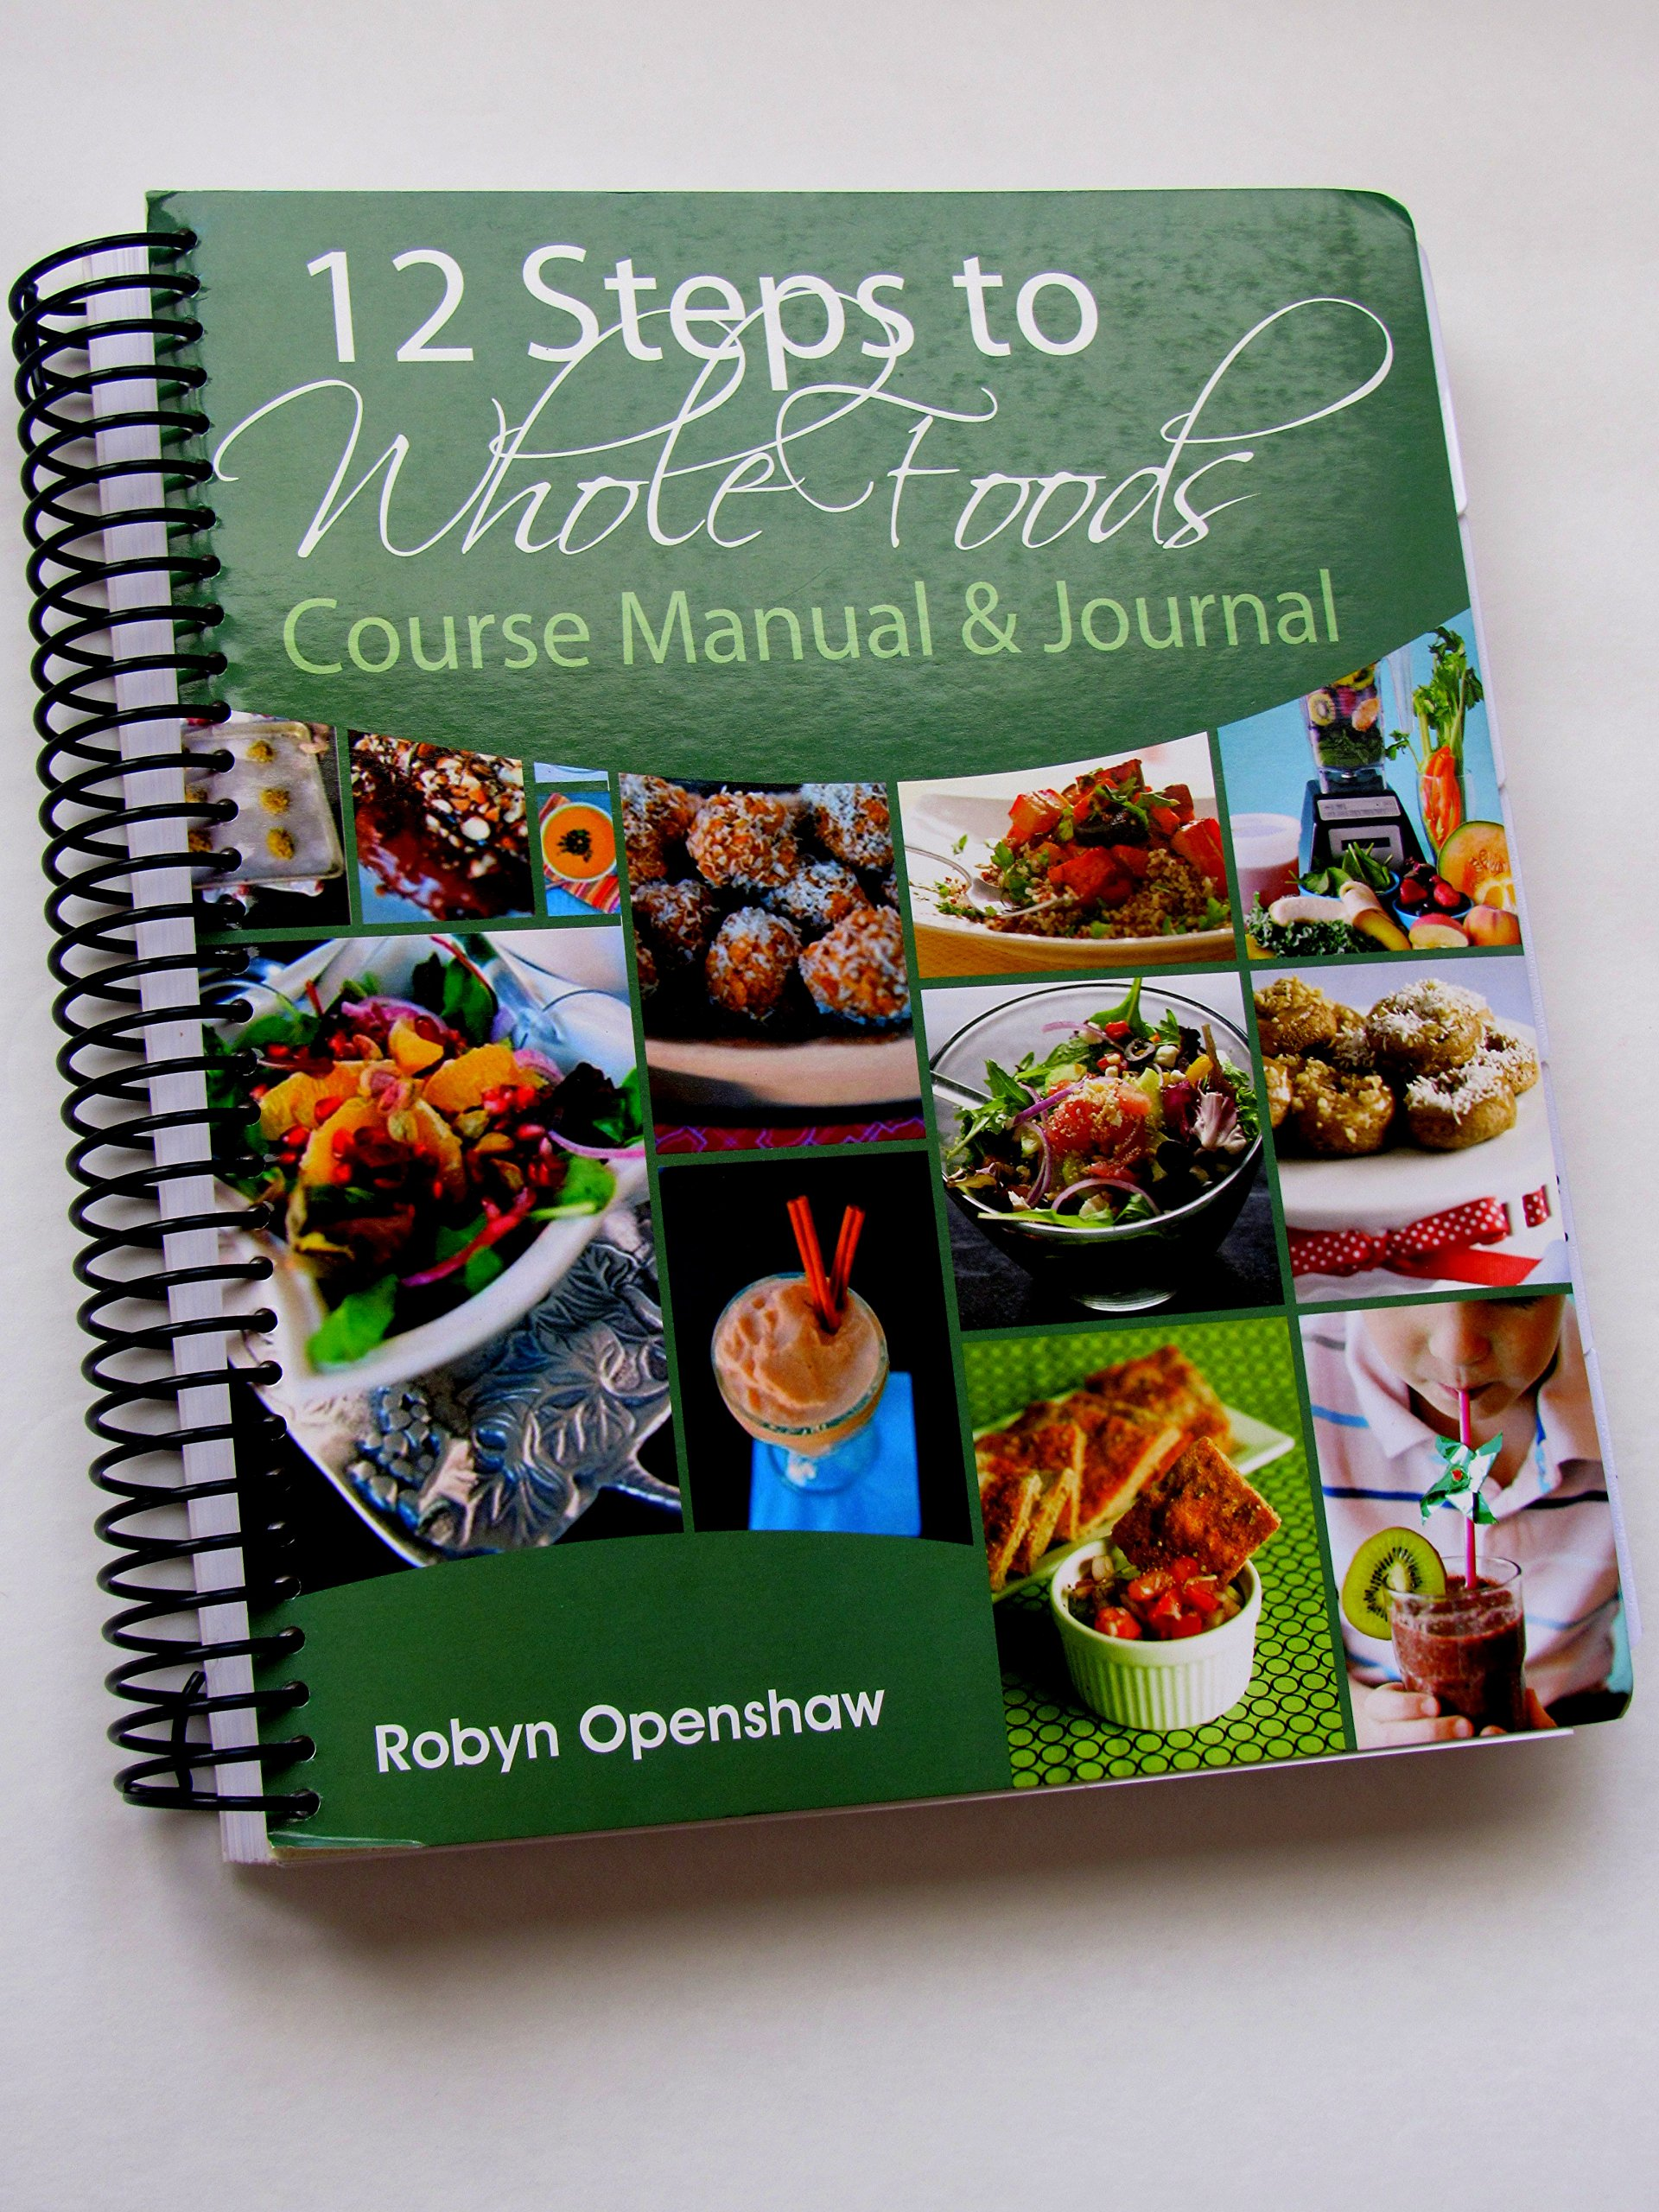 12 Steps to Whole Foods Manual: Robyn Openshaw: 9780983111375: Amazon.com:  Books